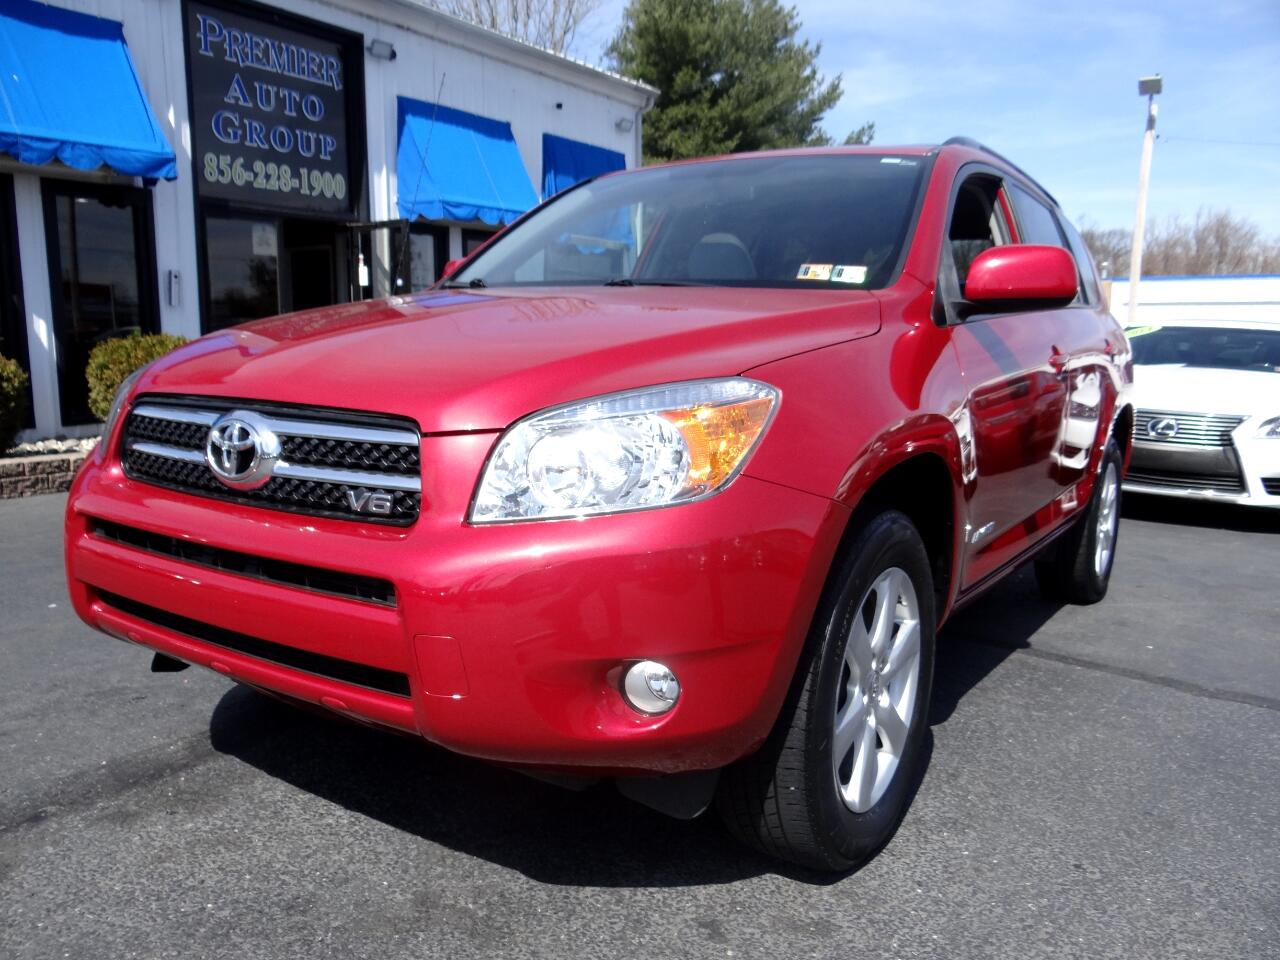 Toyota RAV4 4WD 4dr V6 5-Spd AT Ltd (Natl) 2008